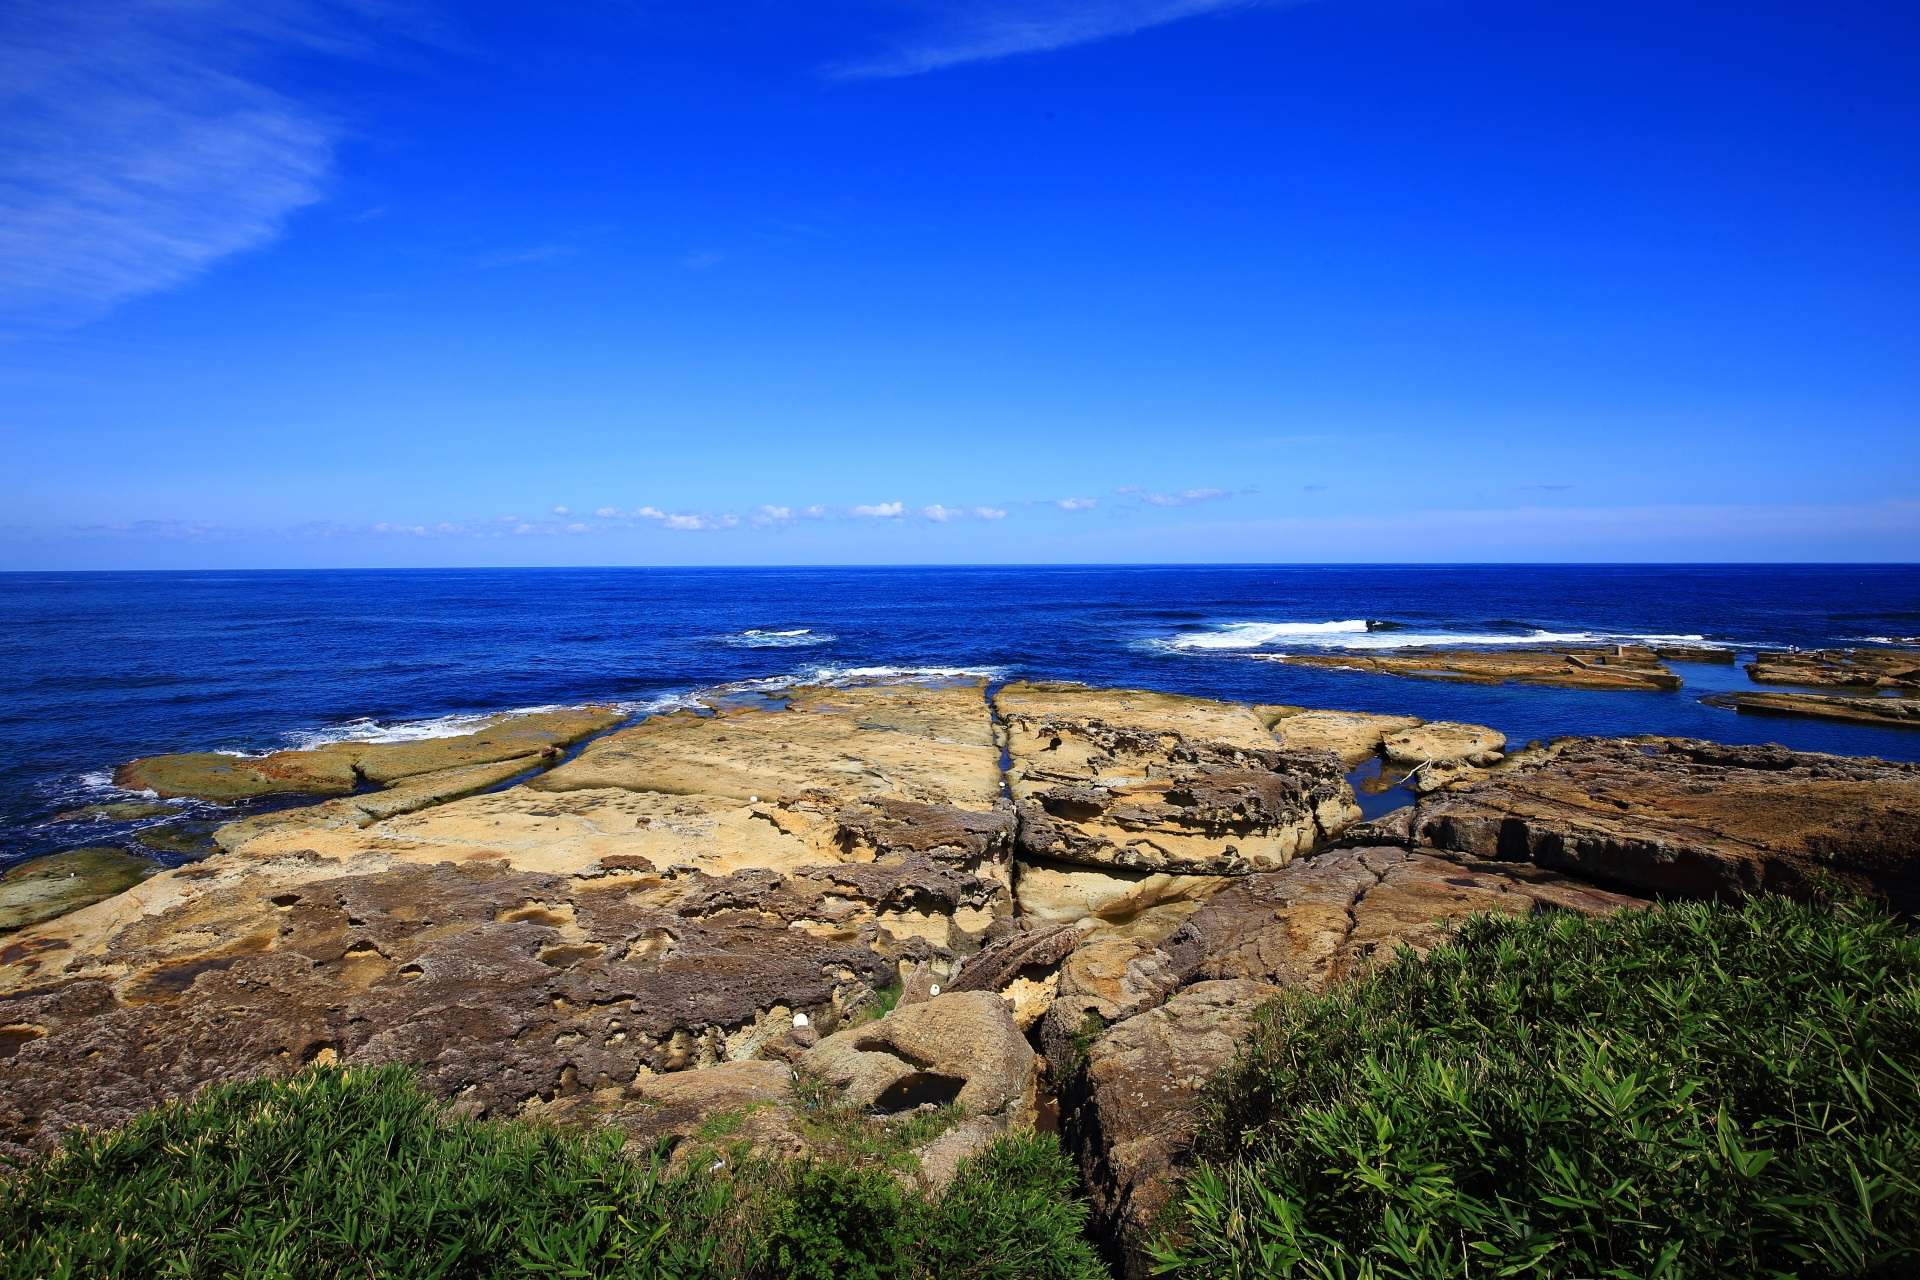 Goshikihama-Beach with beautiful sea of Kyotango and rocks of various colors